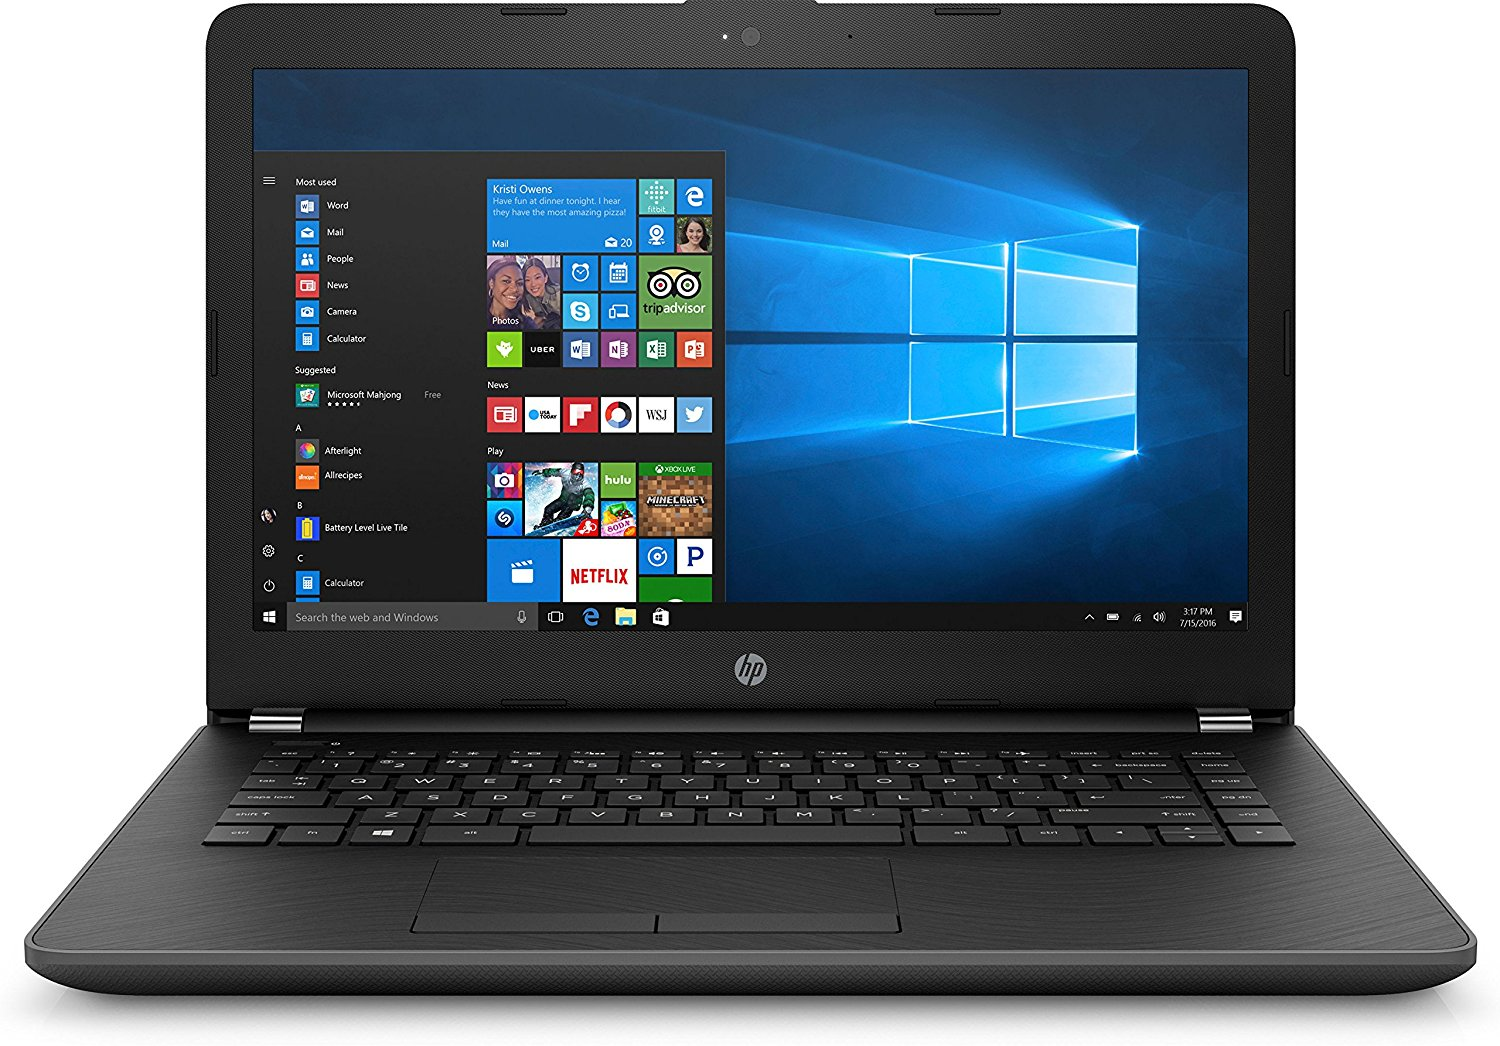 HP 15-BS614TU 15.6-inch Laptop (Celeron N3060/4GB/1TB SATA HDD 5400 RPM/Free DOS /Integrated Graphics), Jet Black